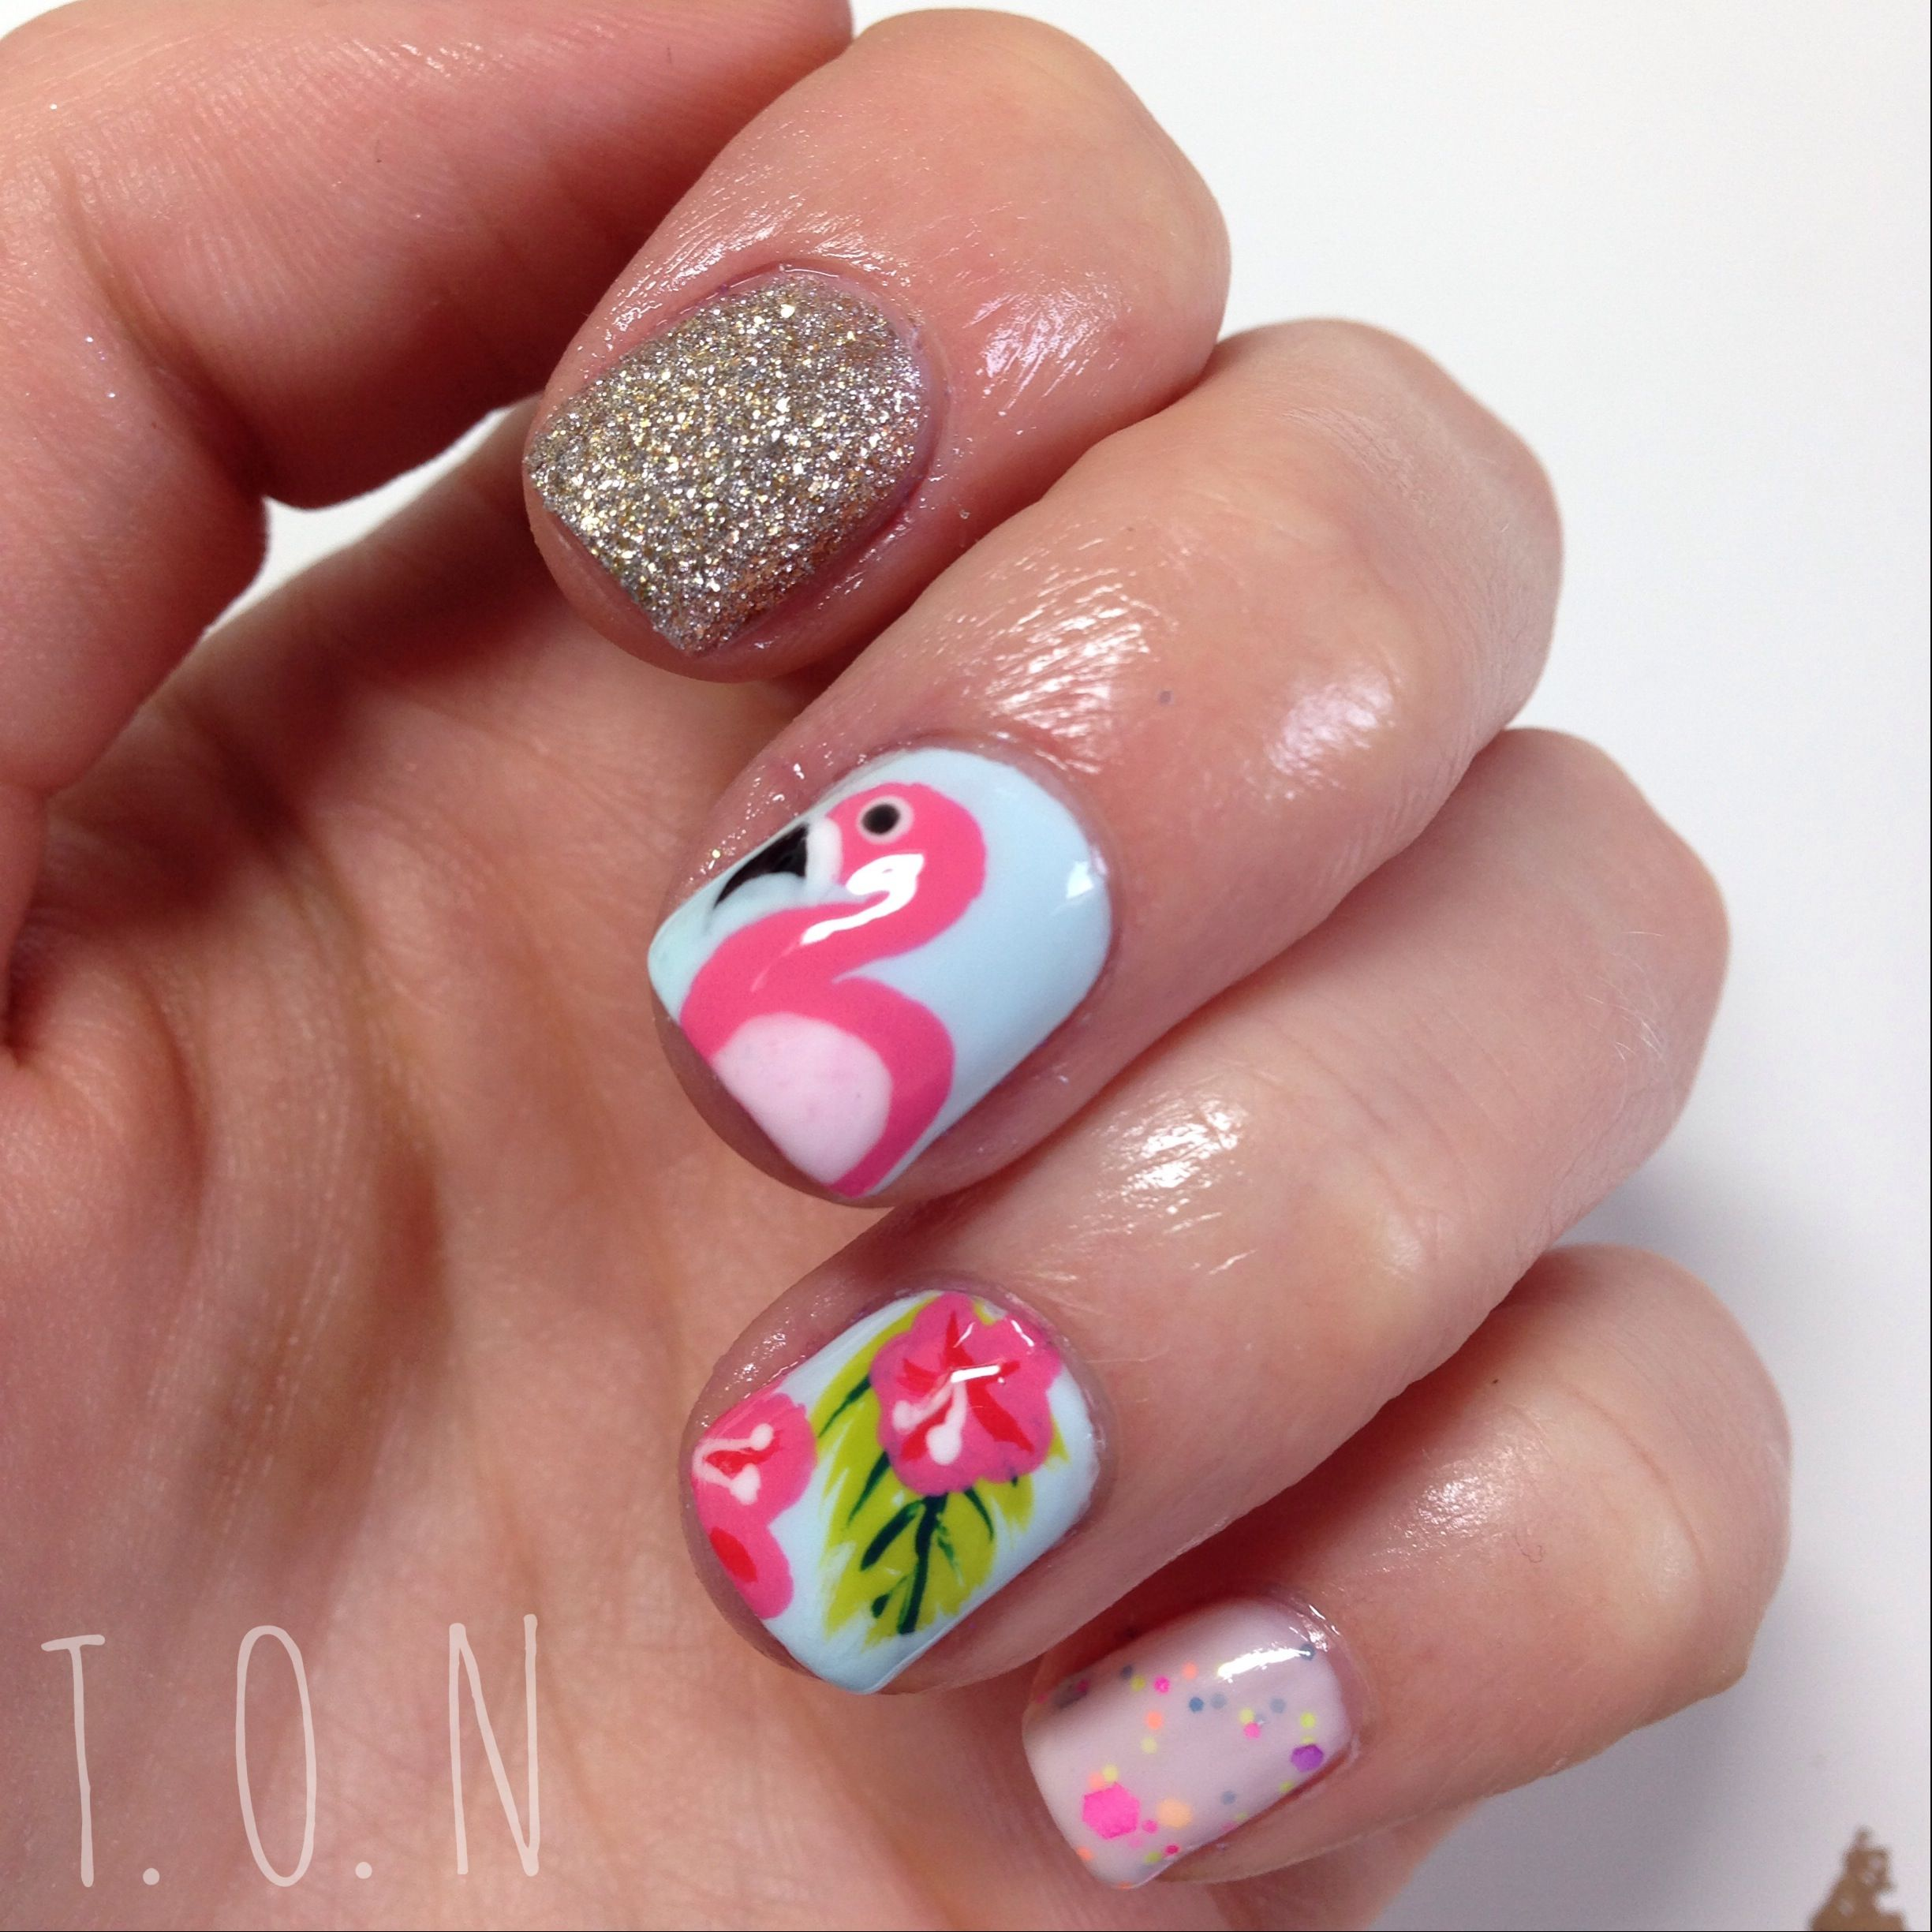 August Nail Art Challenge Day 11 Tropical Flamingo Nails Tropical Nails August Nails